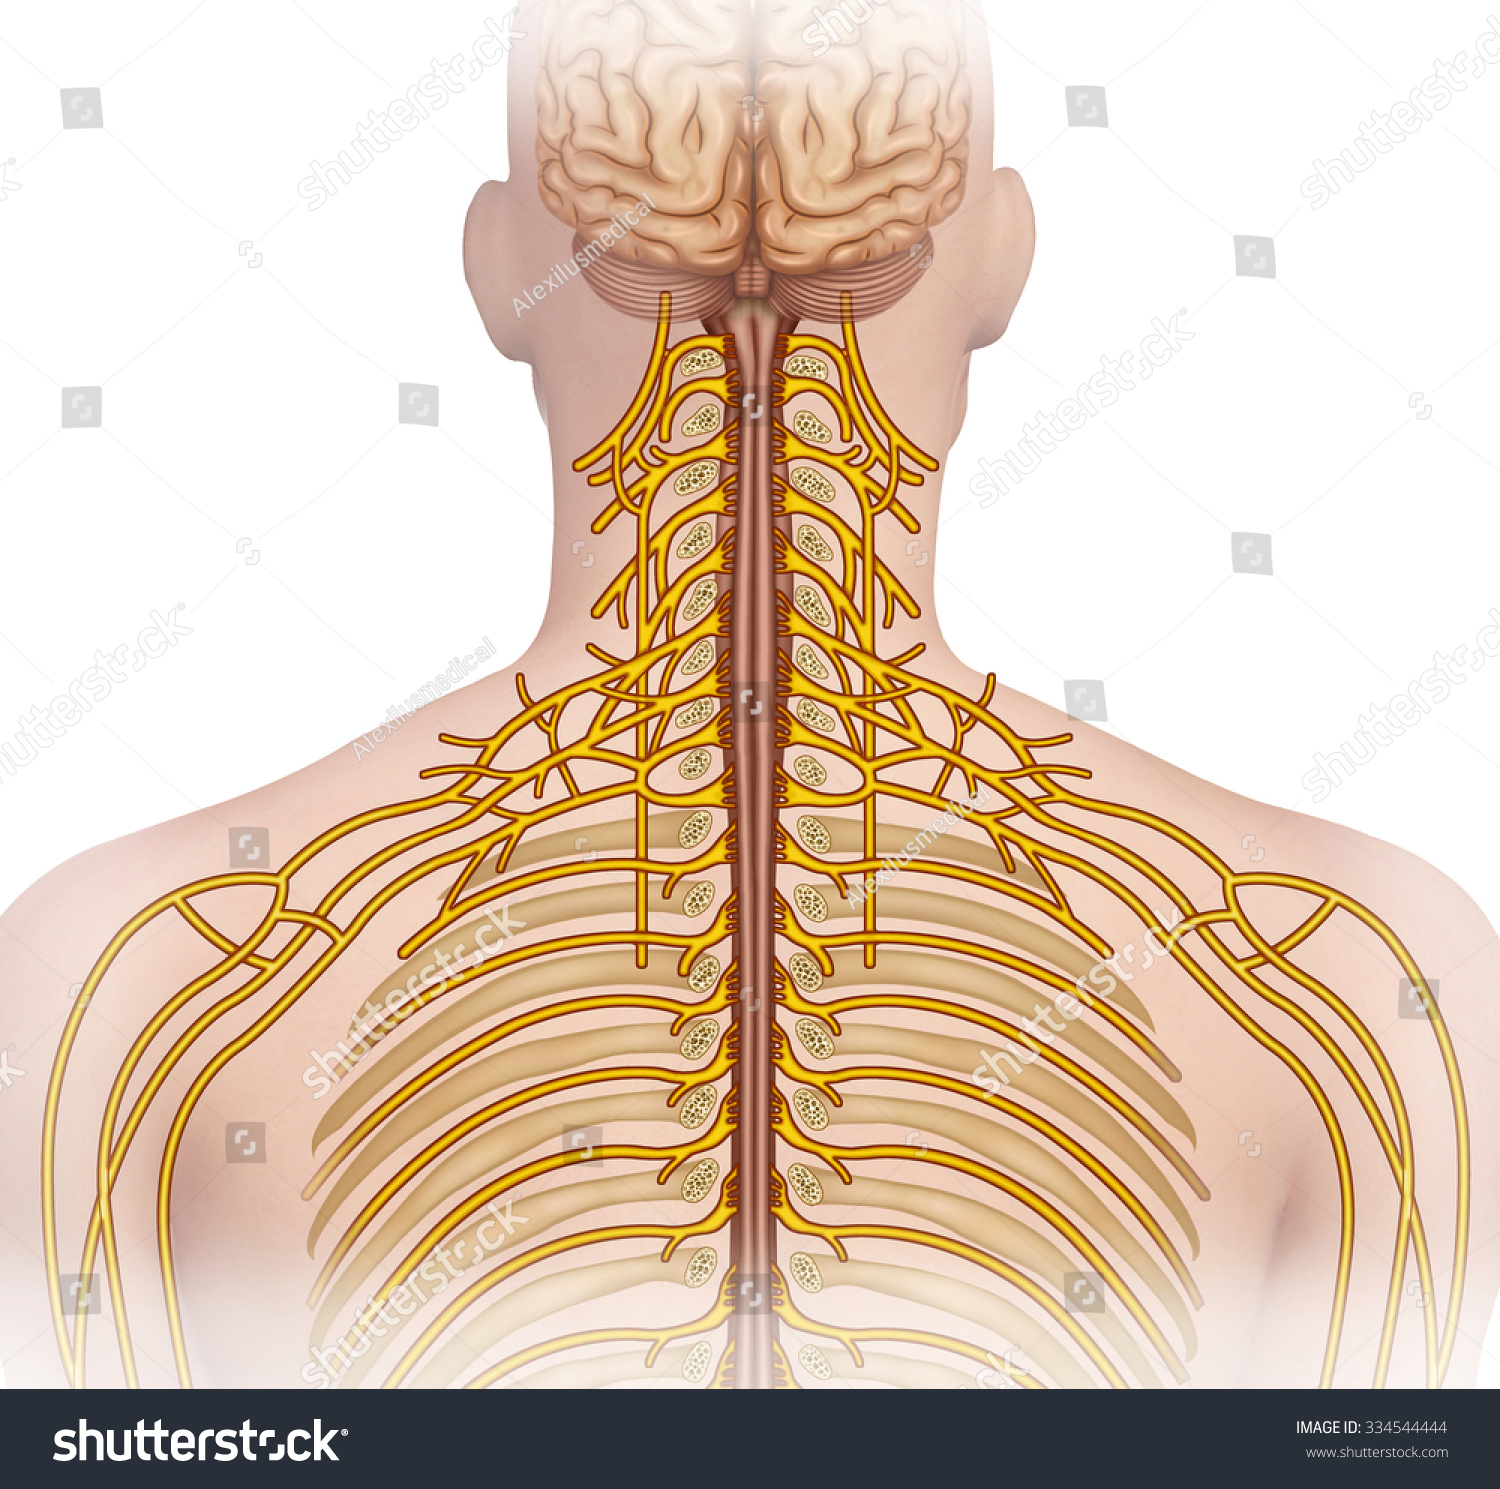 Descriptive Illustration Human Cervical Nerve Ramification Stock ...